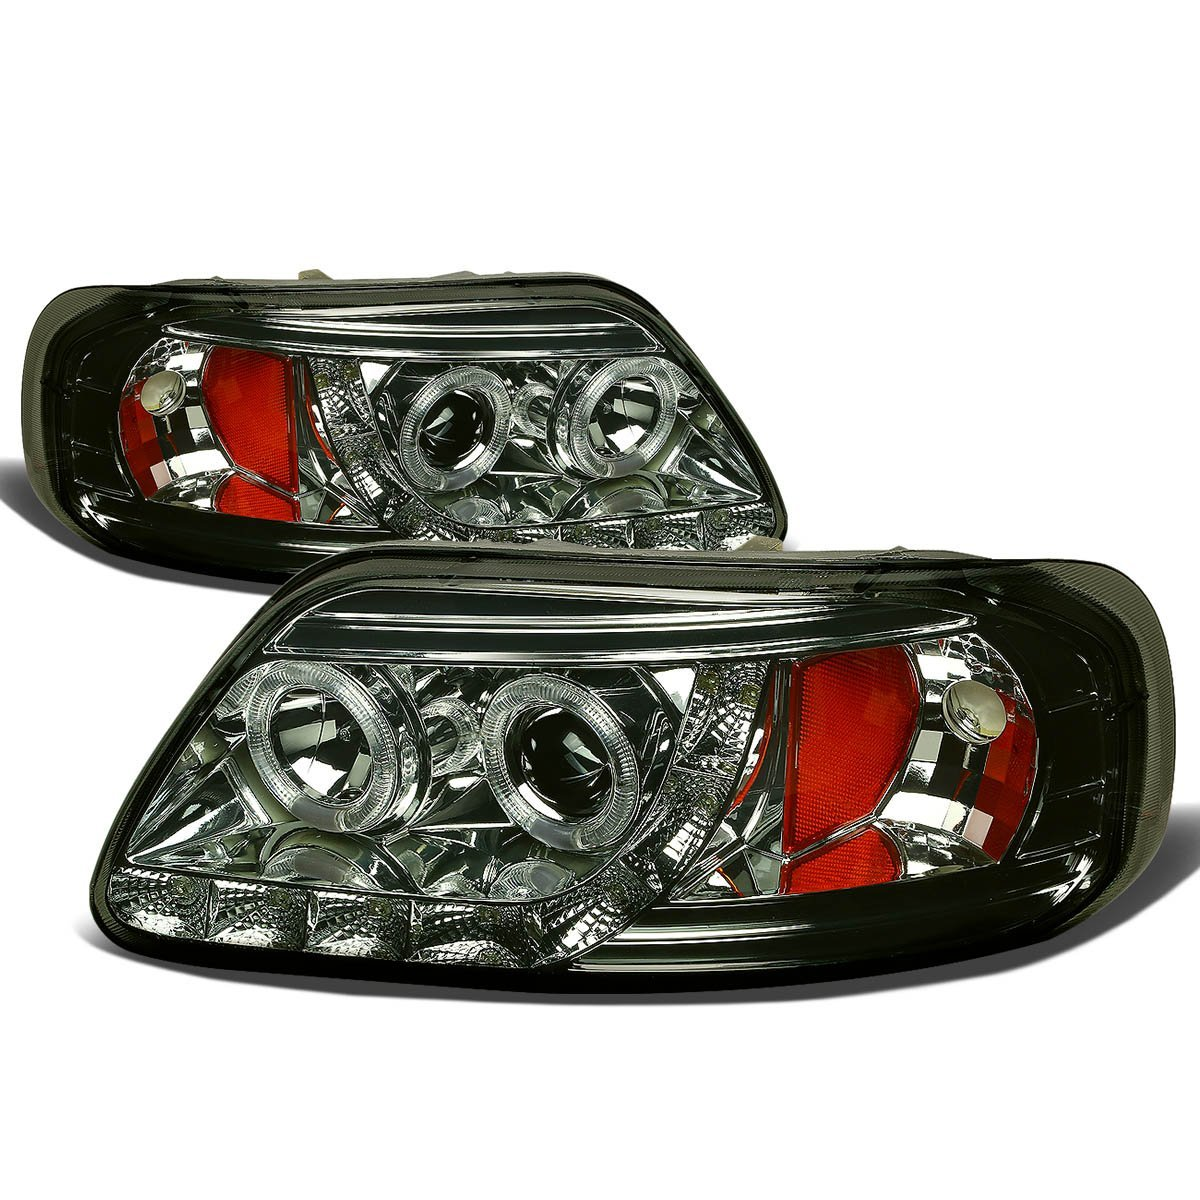 Smoked Led Headlights Pictures To Pin On Pinterest Pinsdaddy